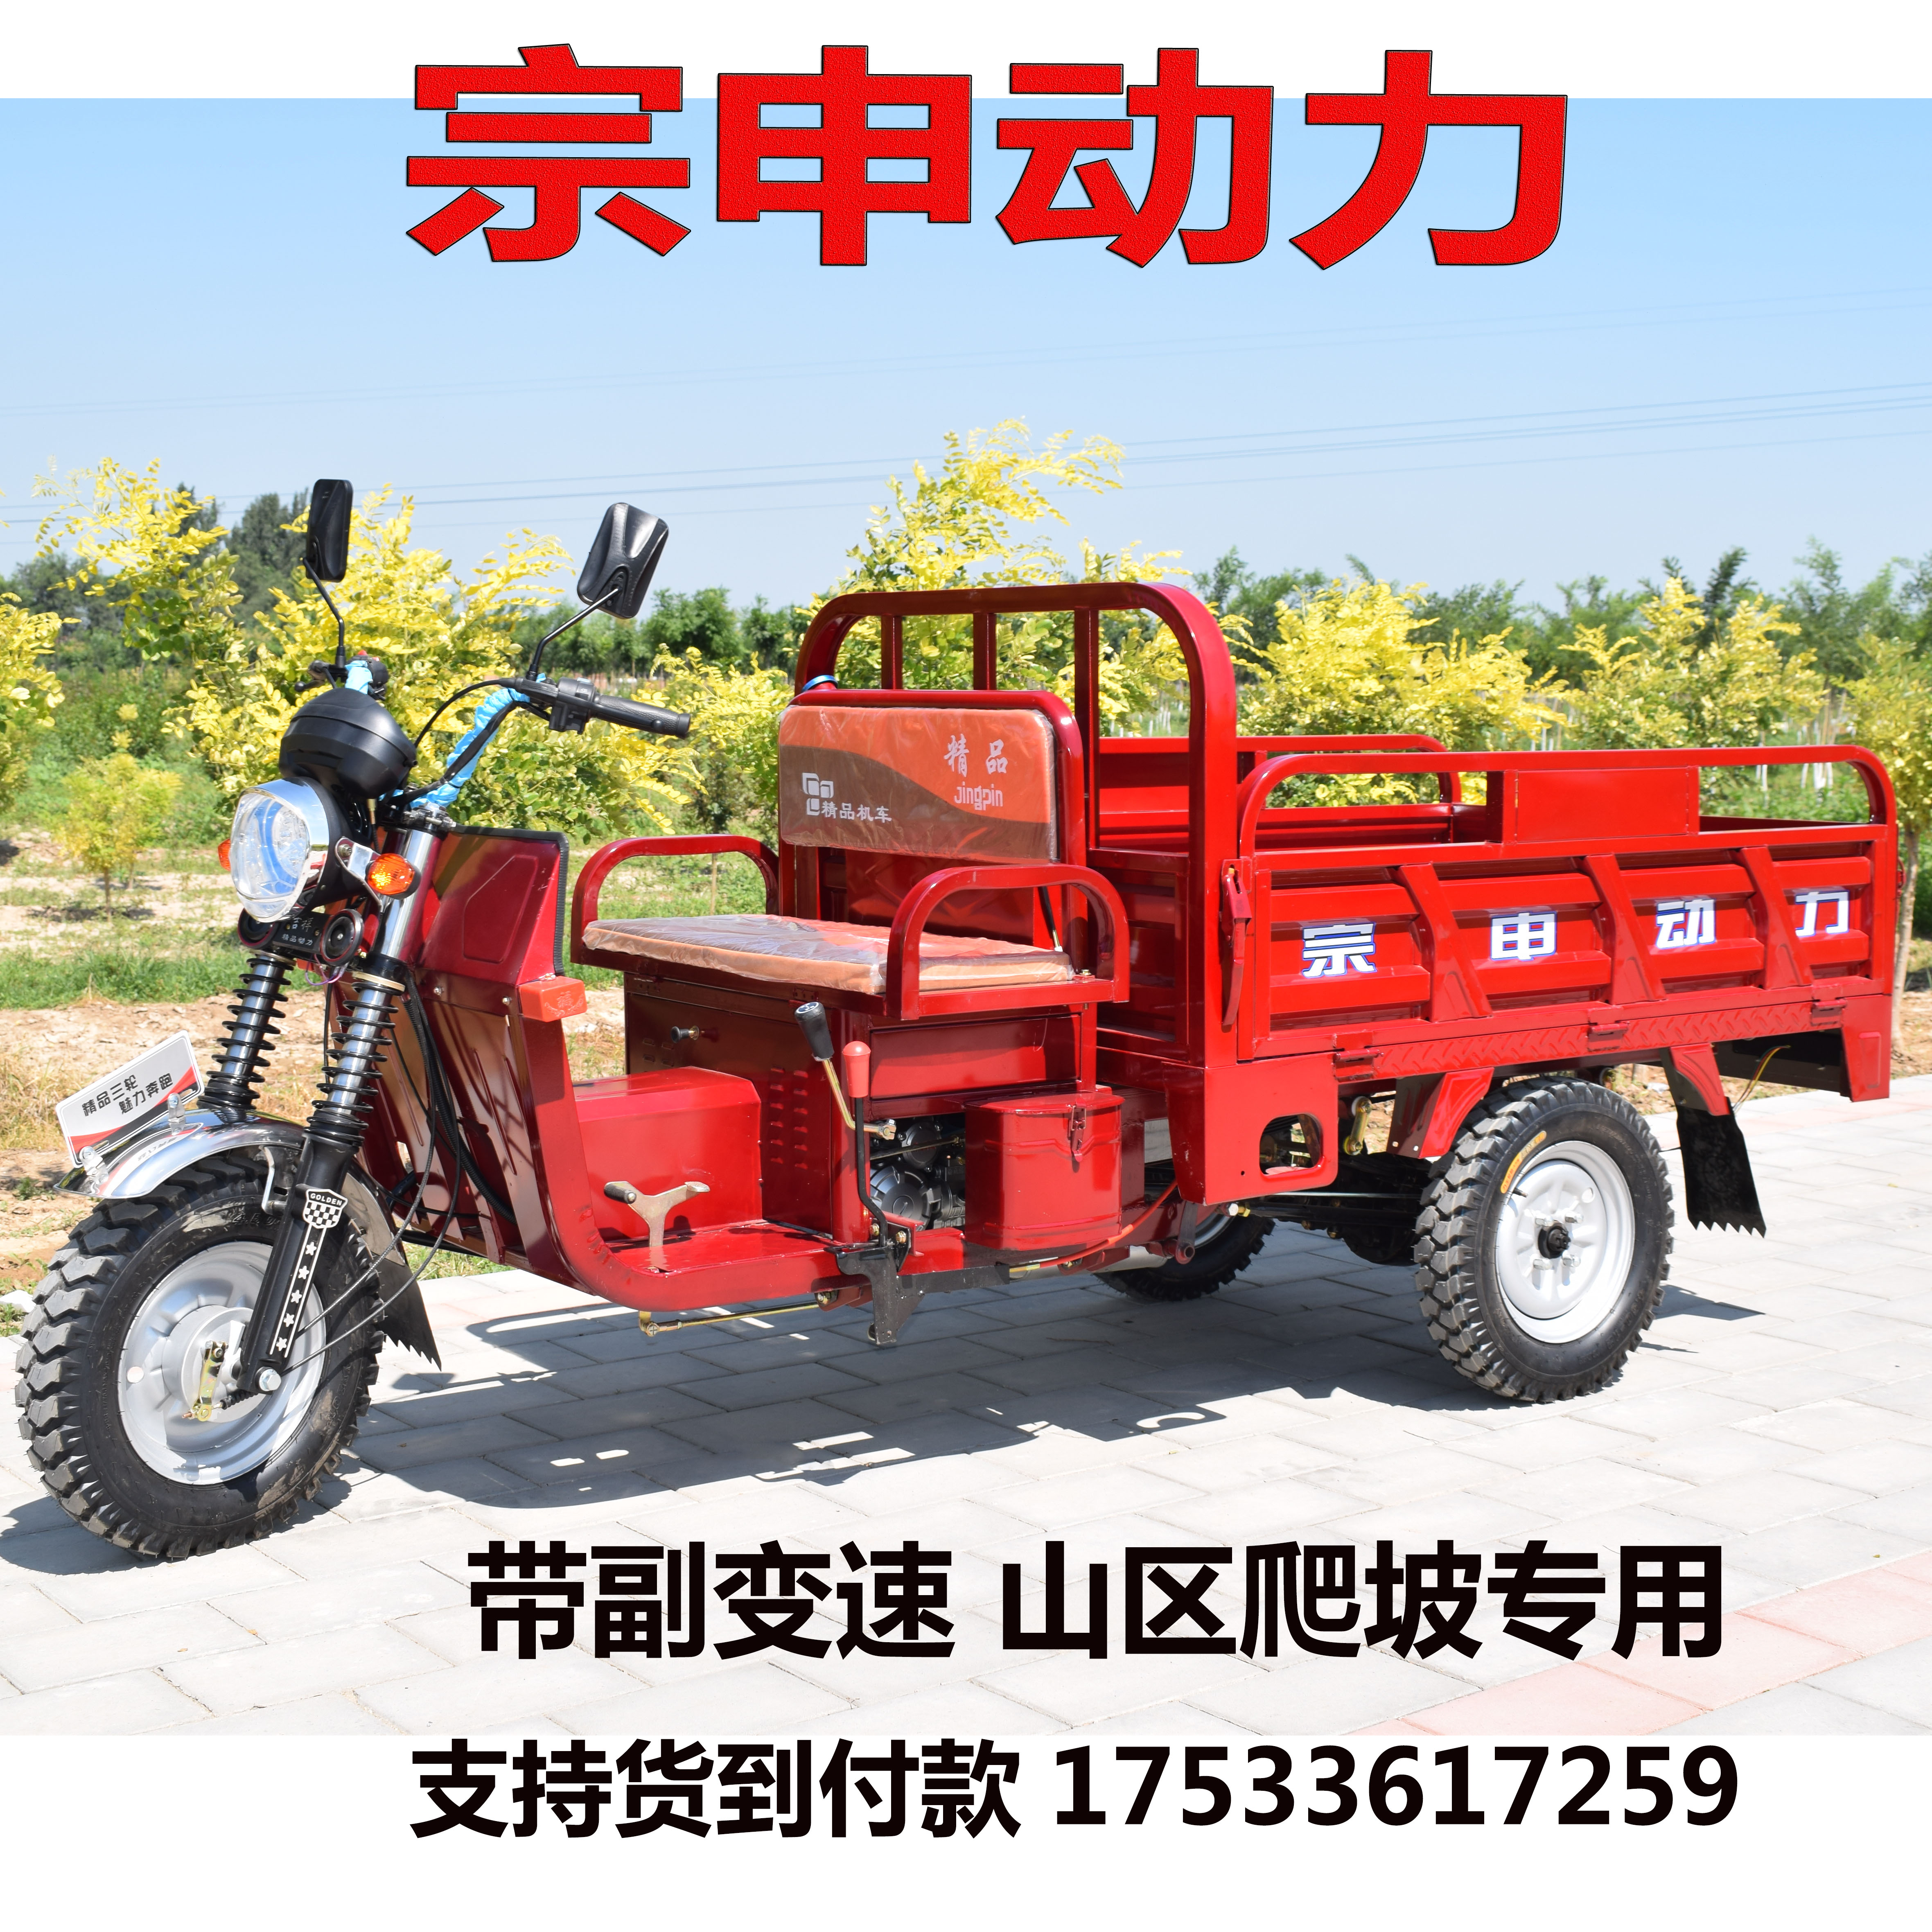 Authentic Zongshen power gasoline tricycle agricultural freight heavy duty fuel tricycle household assistance brand new